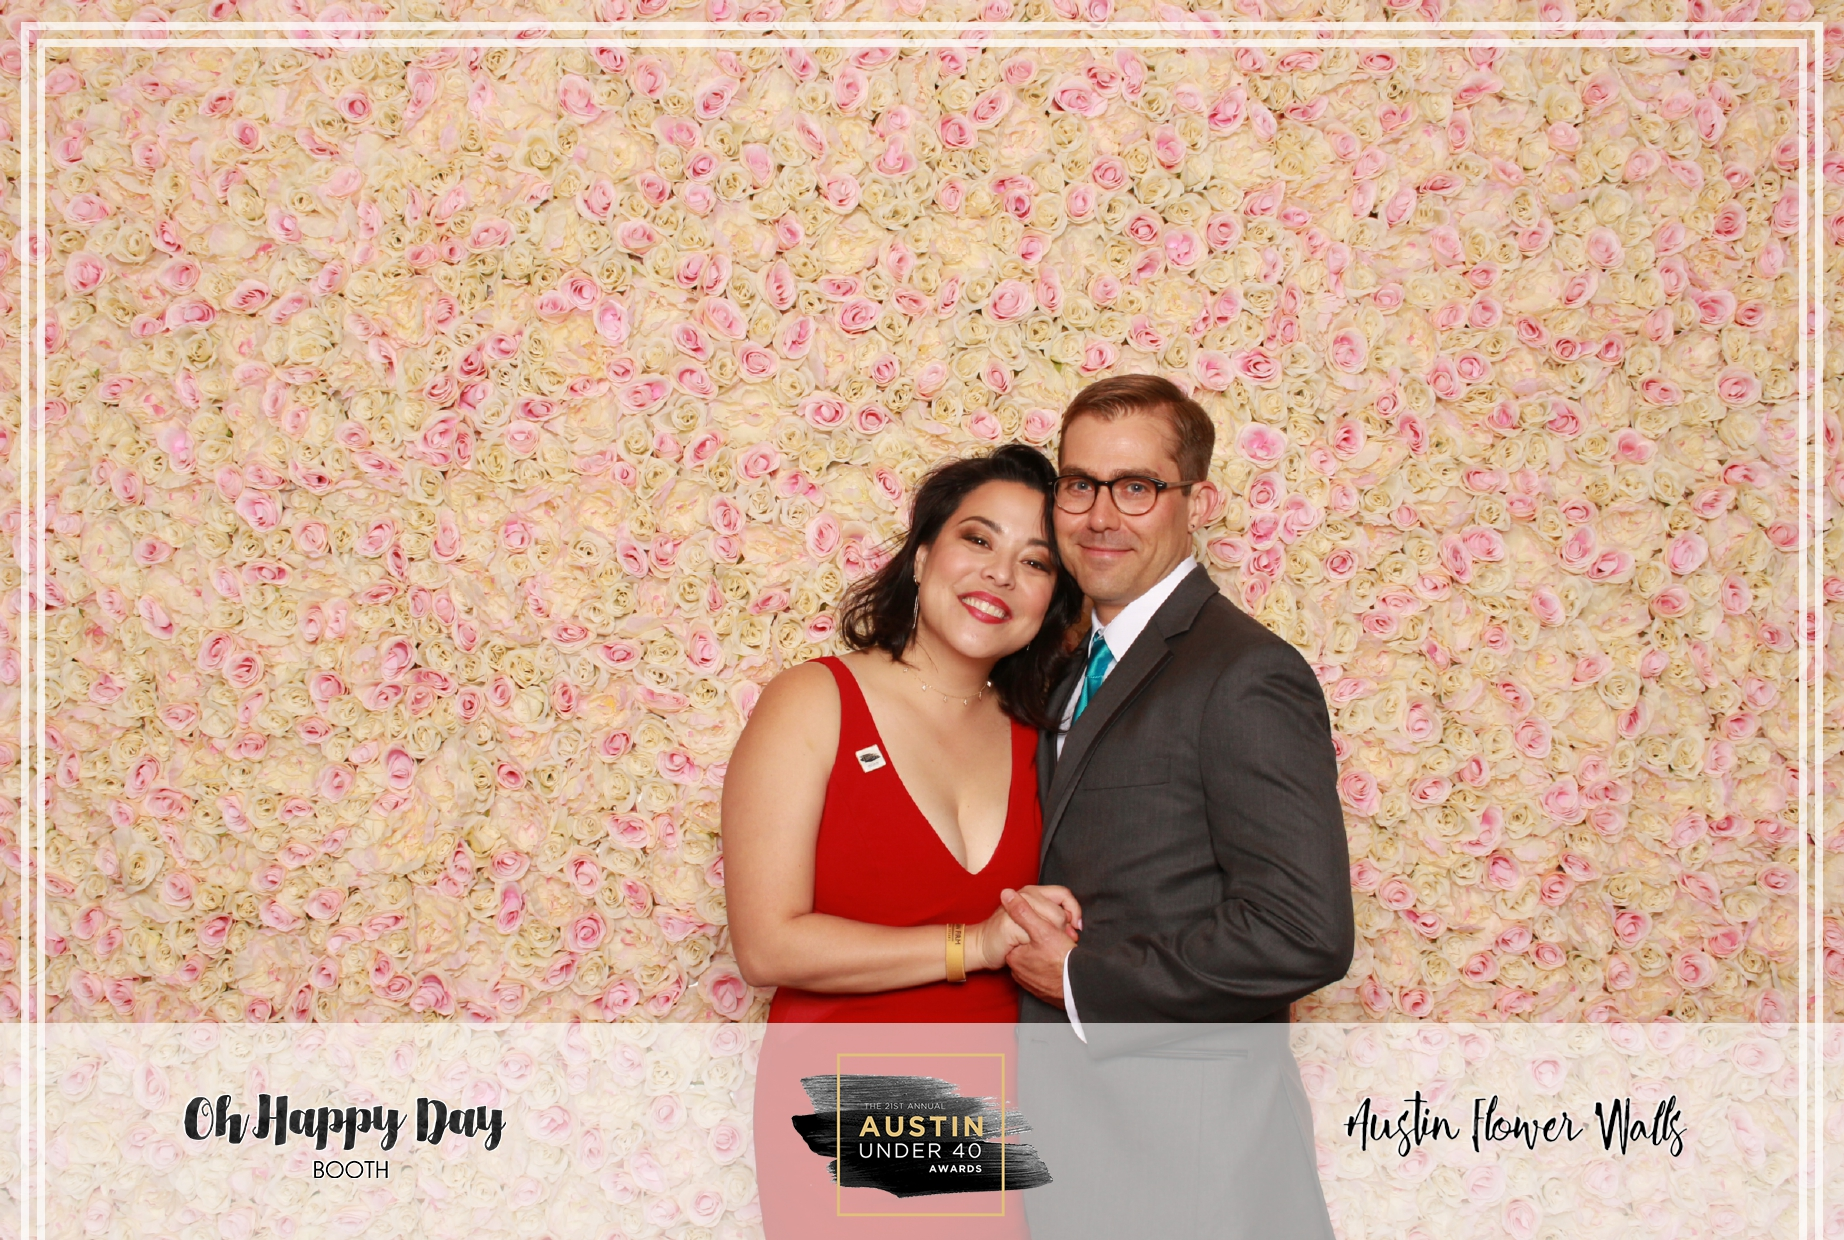 Oh Happy Day Booth - Austin Under 40-118.jpg